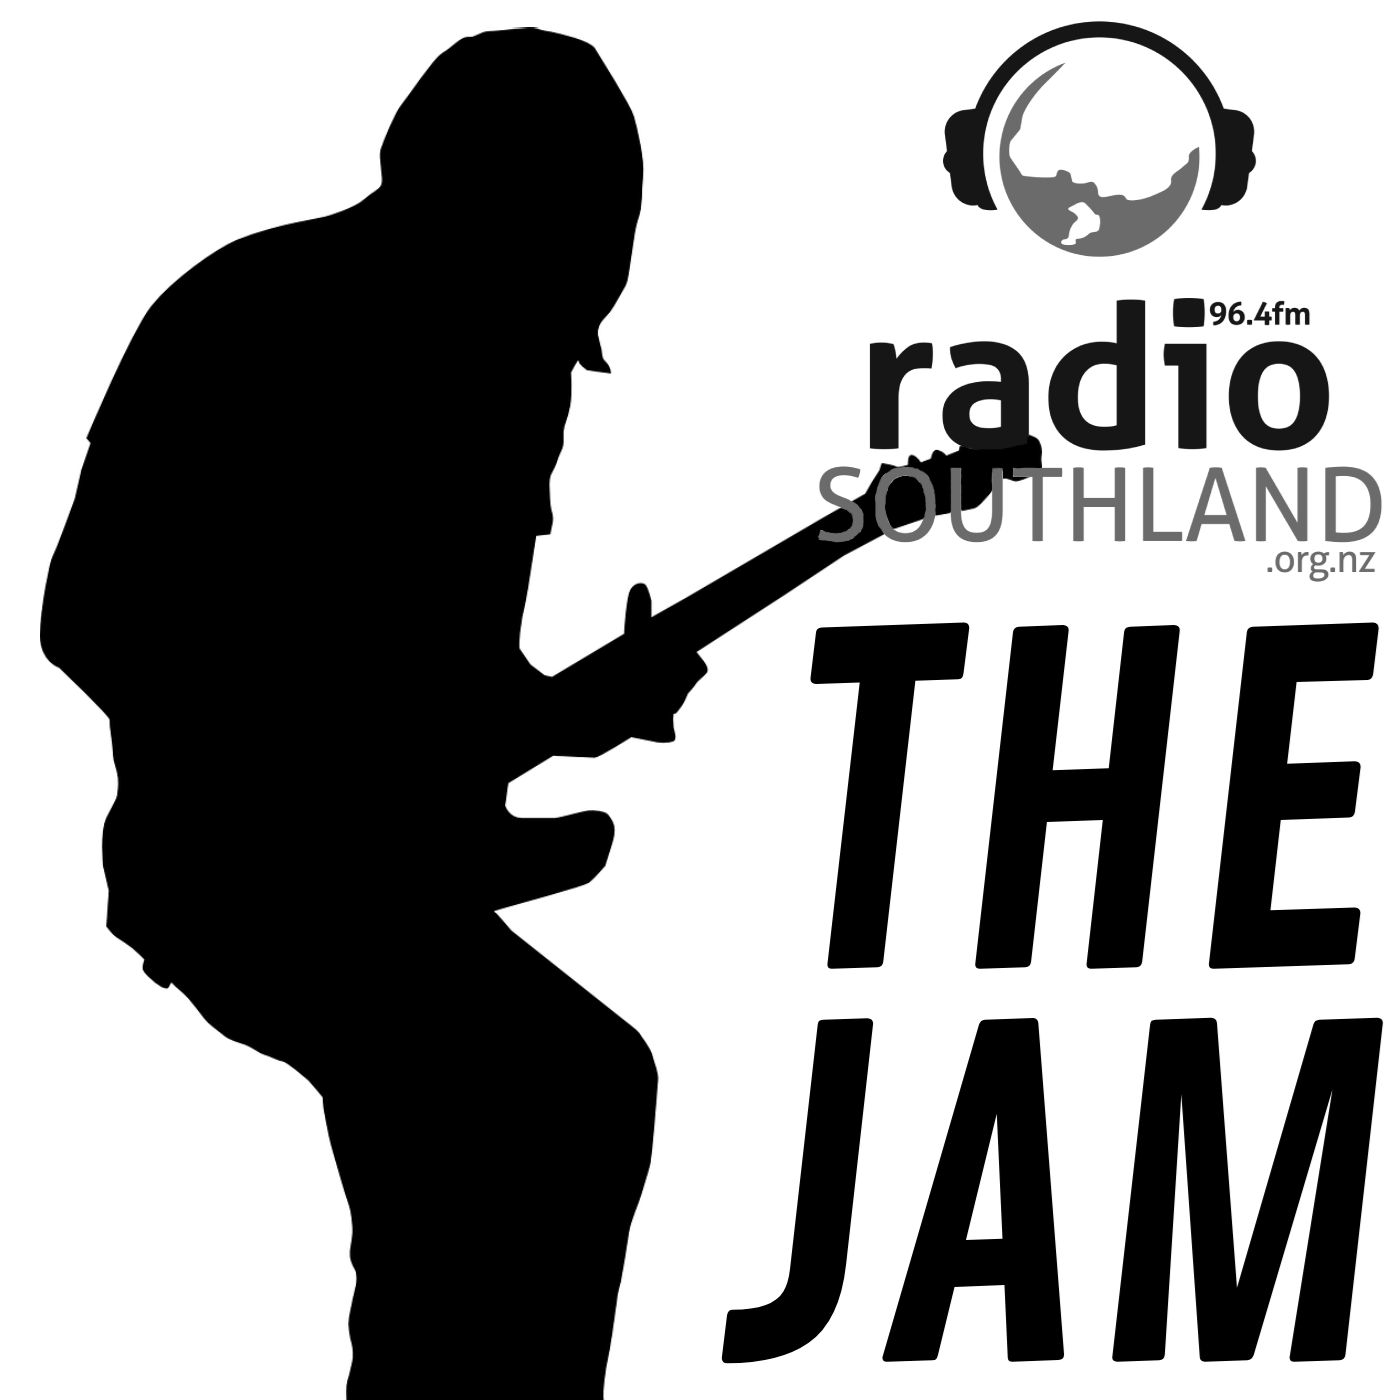 https://cdn.accessradio.org/StationFolder/radiosouthland/Images/Jam1.png